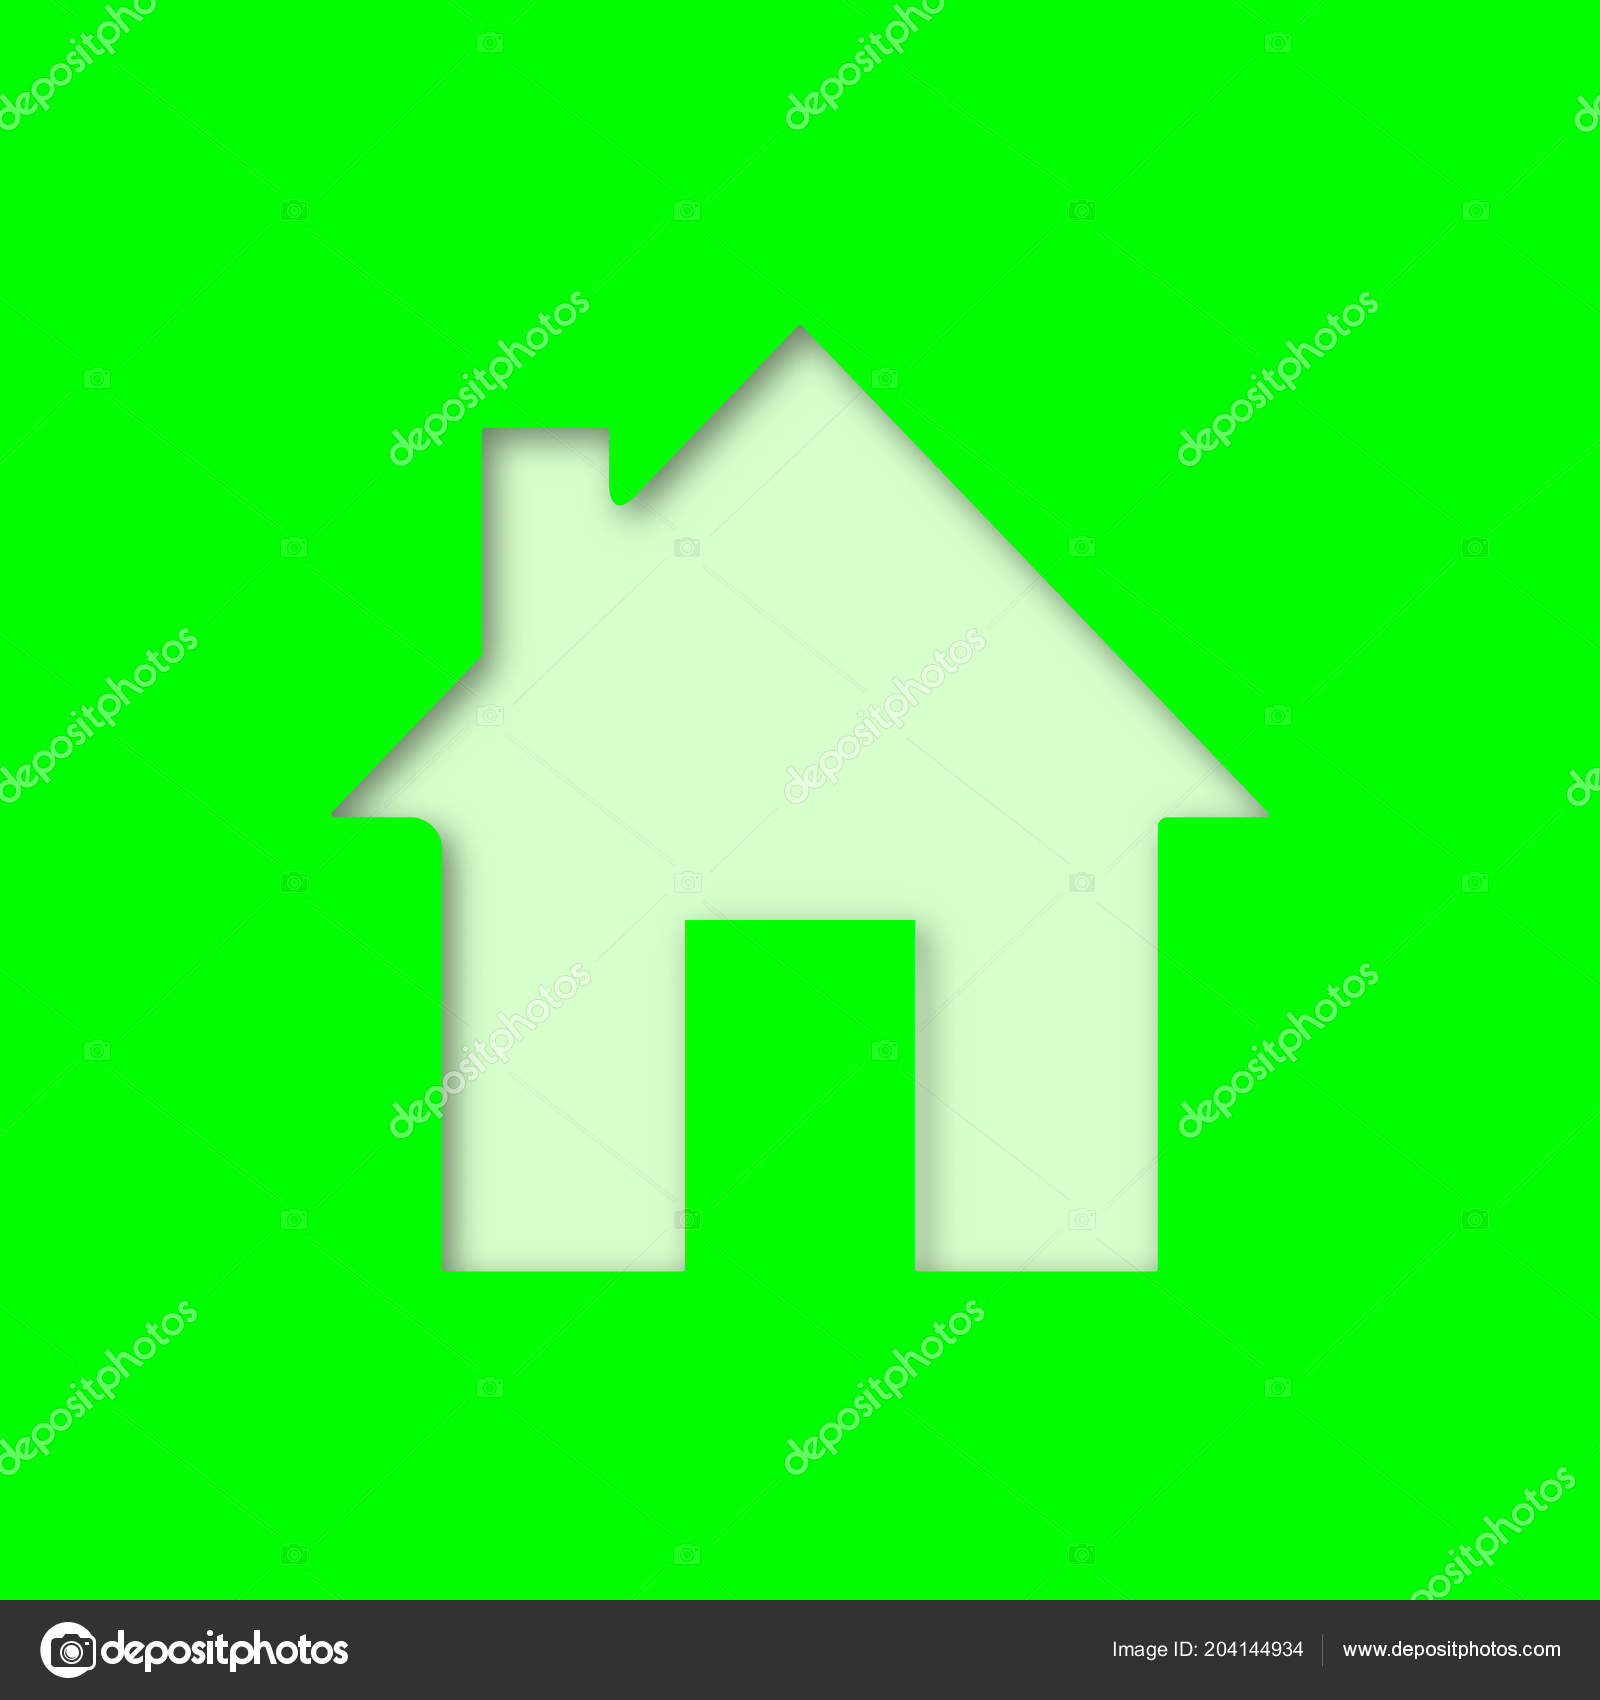 homepage paper cut out icon house home building vector silhouette